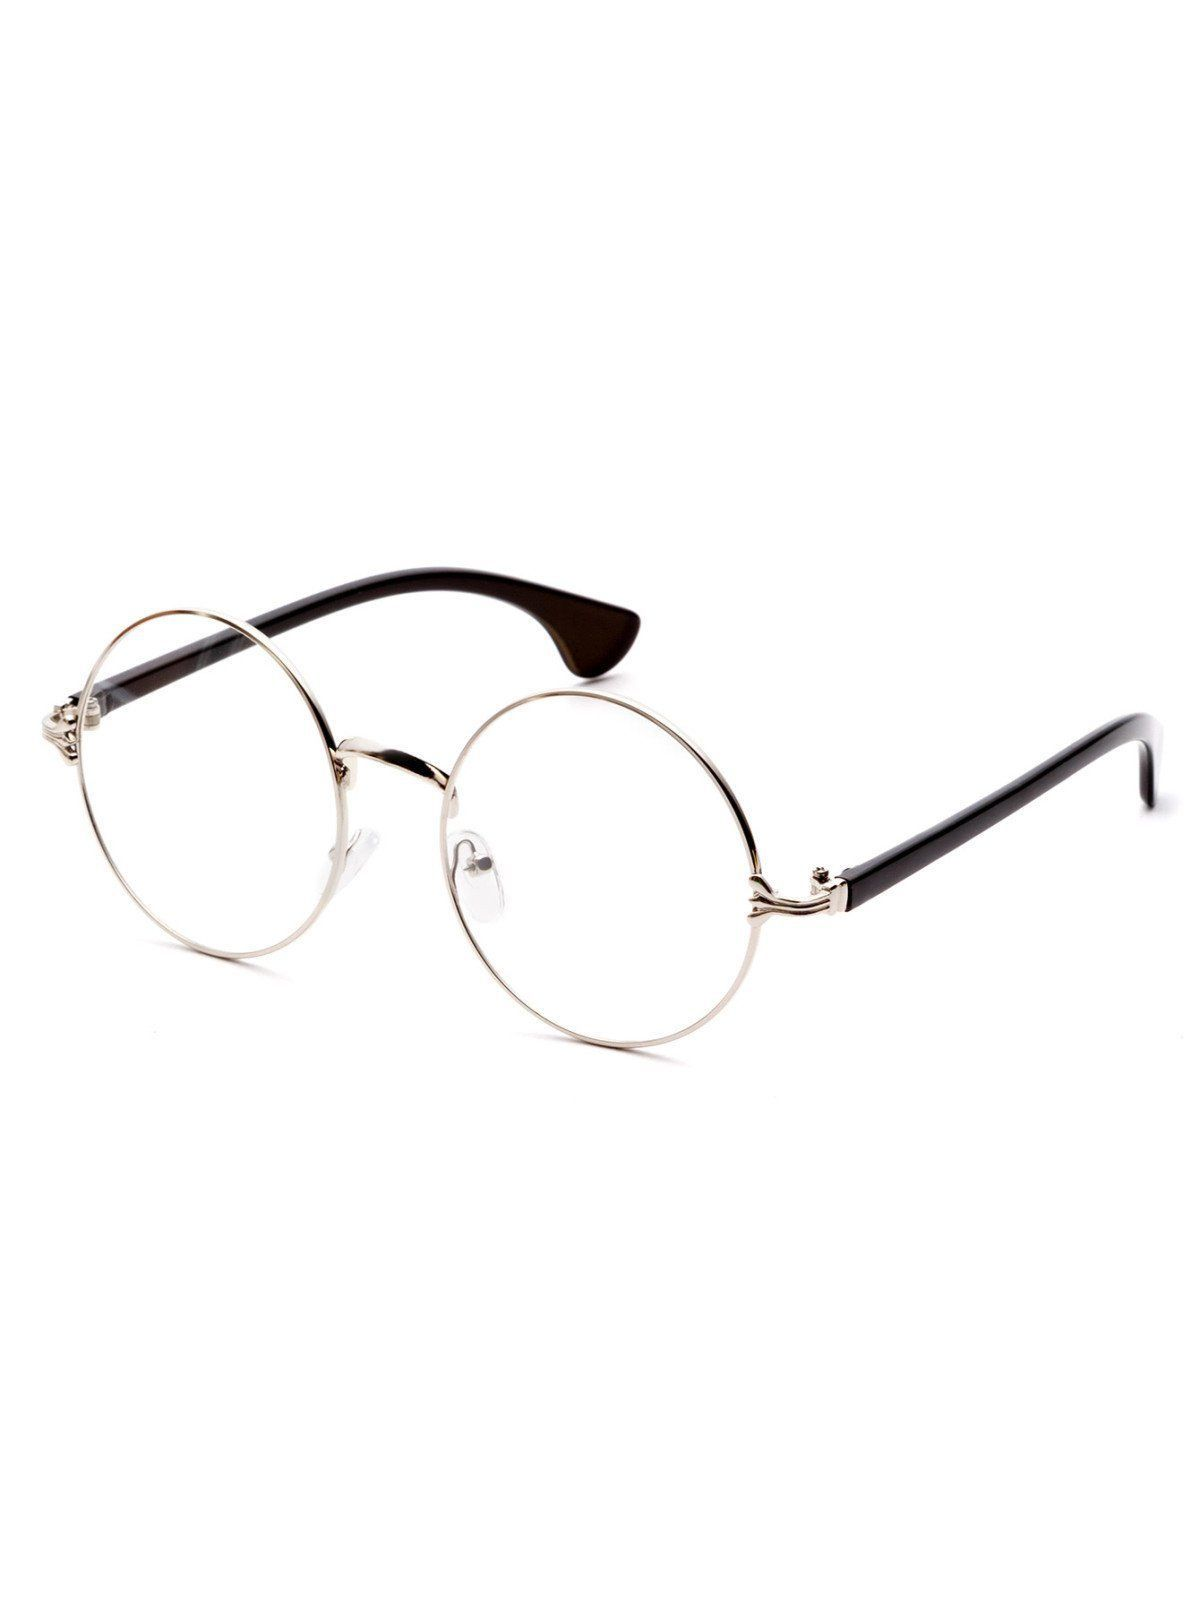 fbe0c5ad72 Silver Frame Black Arm Clear Lens Glasses